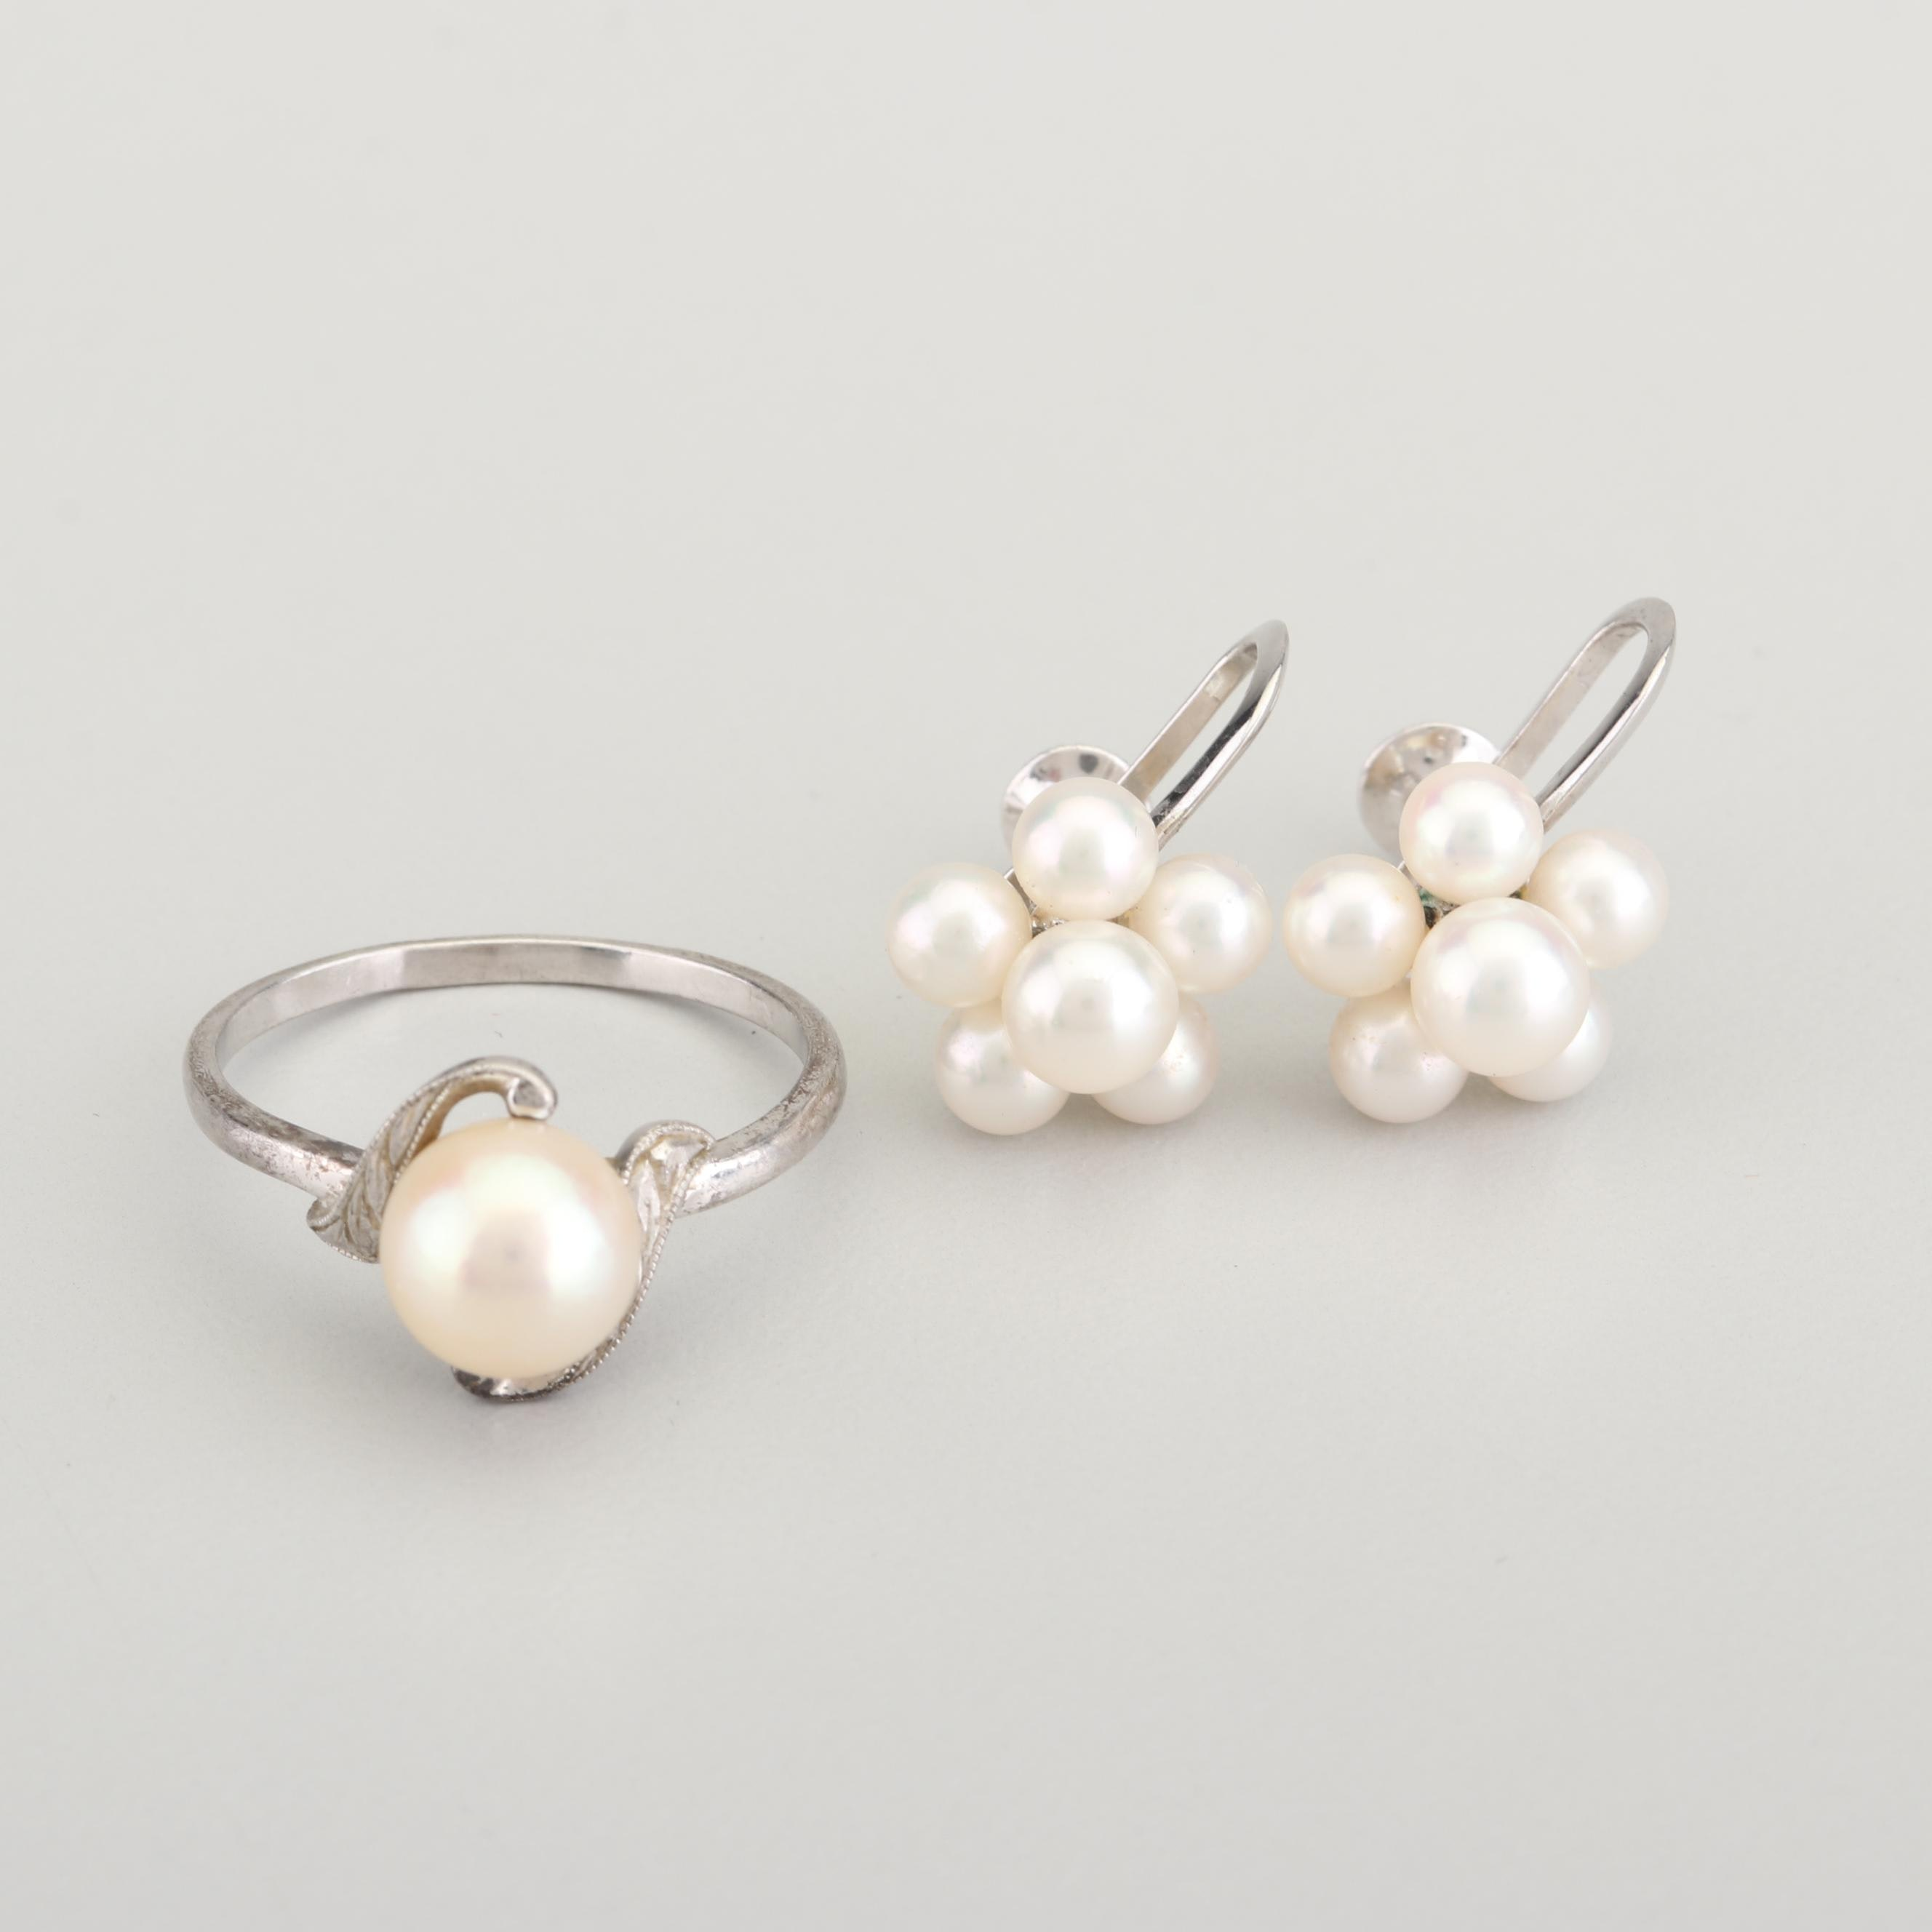 Mikimoto Sterling Silver Freshwater Cultured Pearl Ring and Earrings